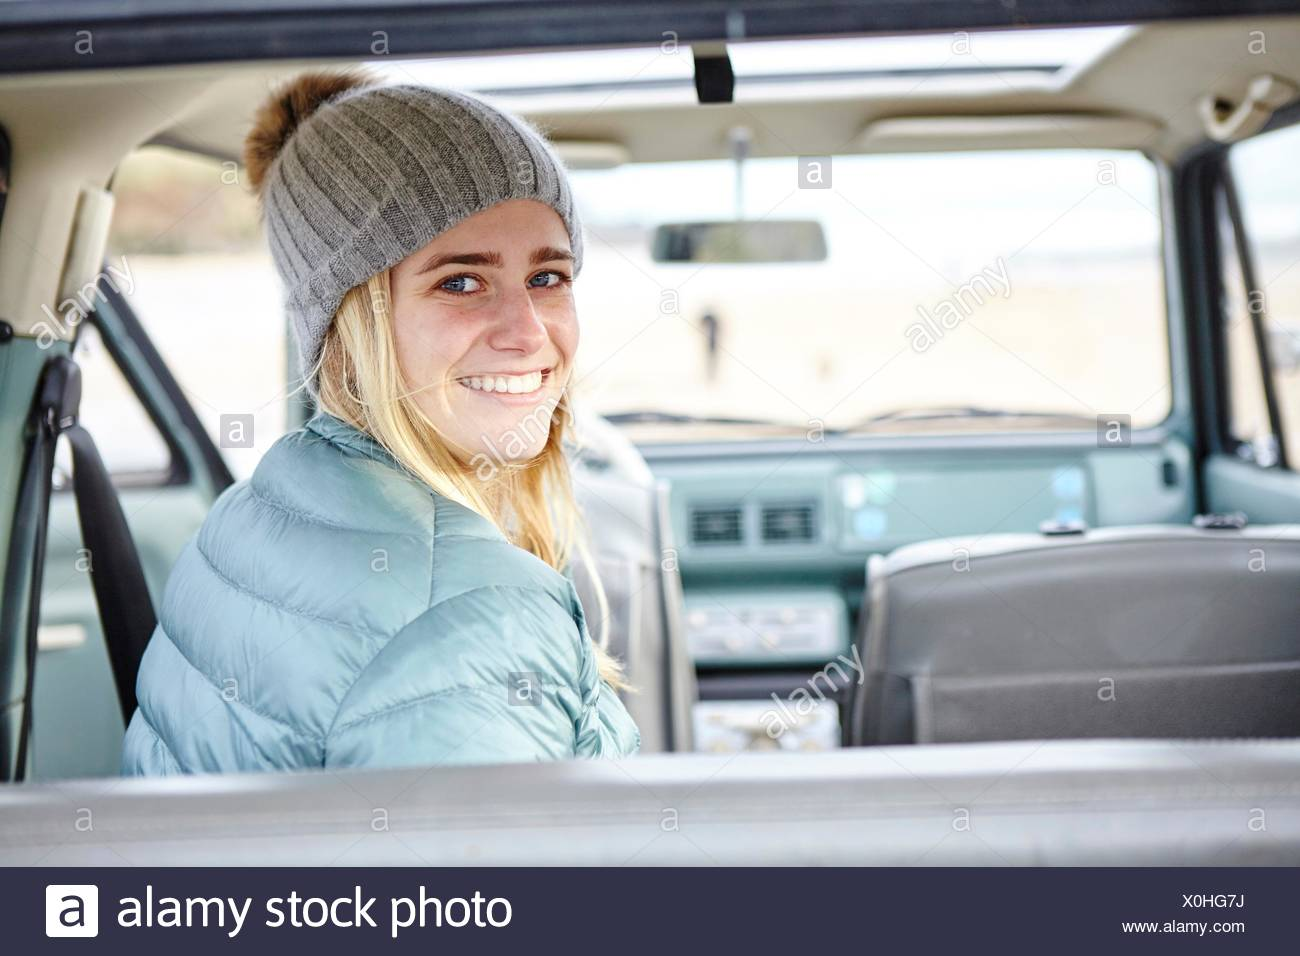 Portrait of young woman in car at beach wearing knit hat - Stock Image